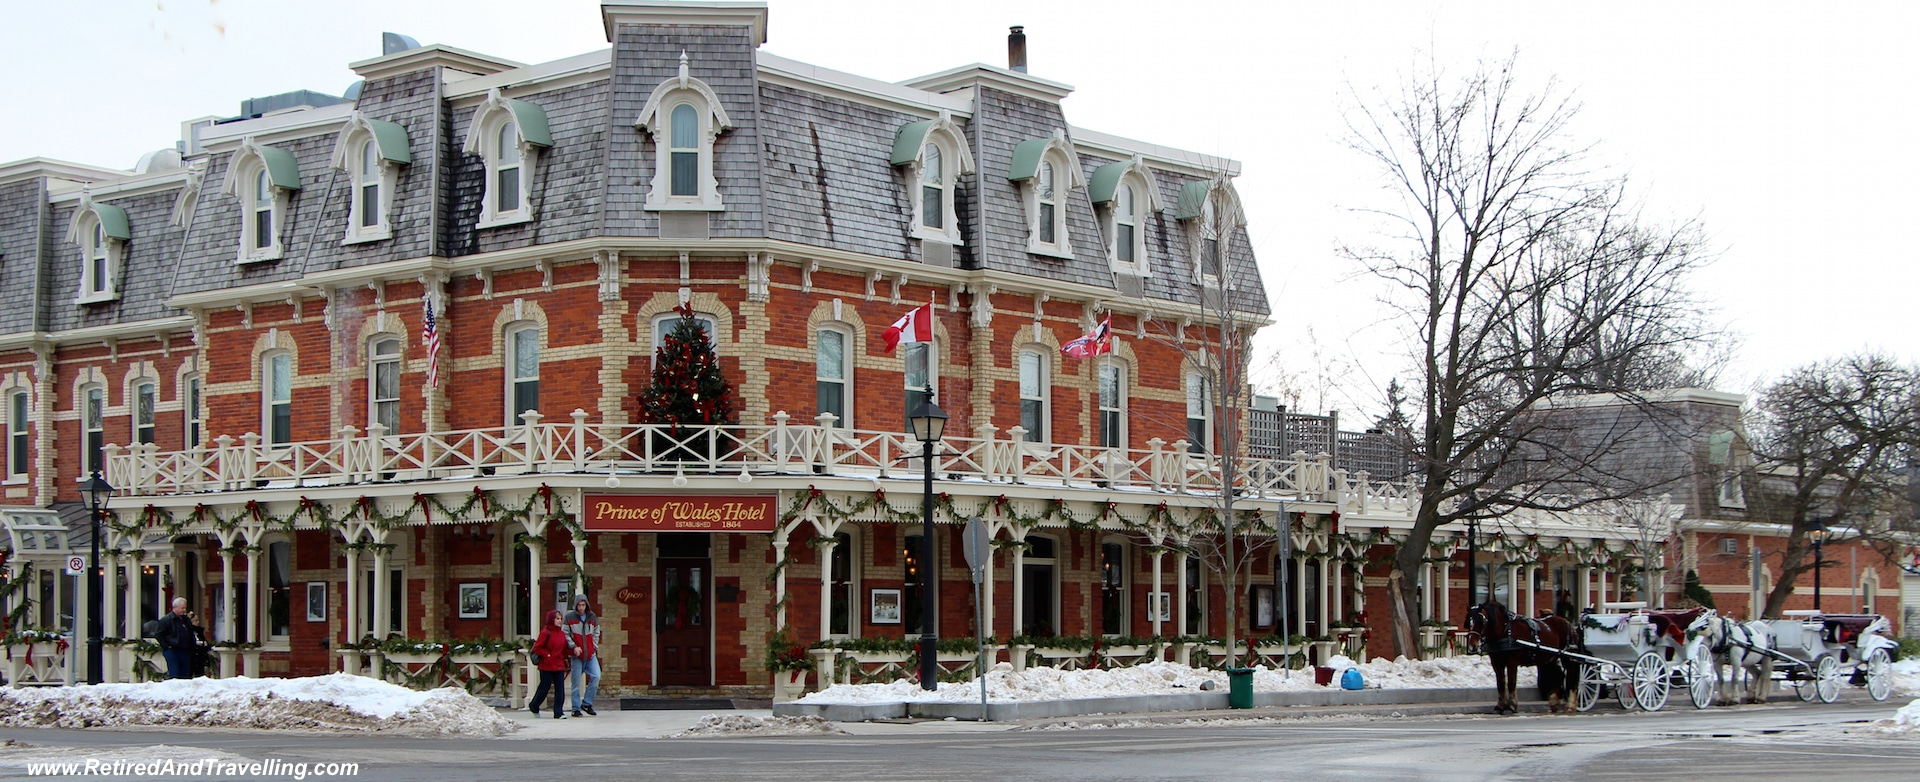 Niagara on the Lake - Things To Do When Visiting Toronto.jpg